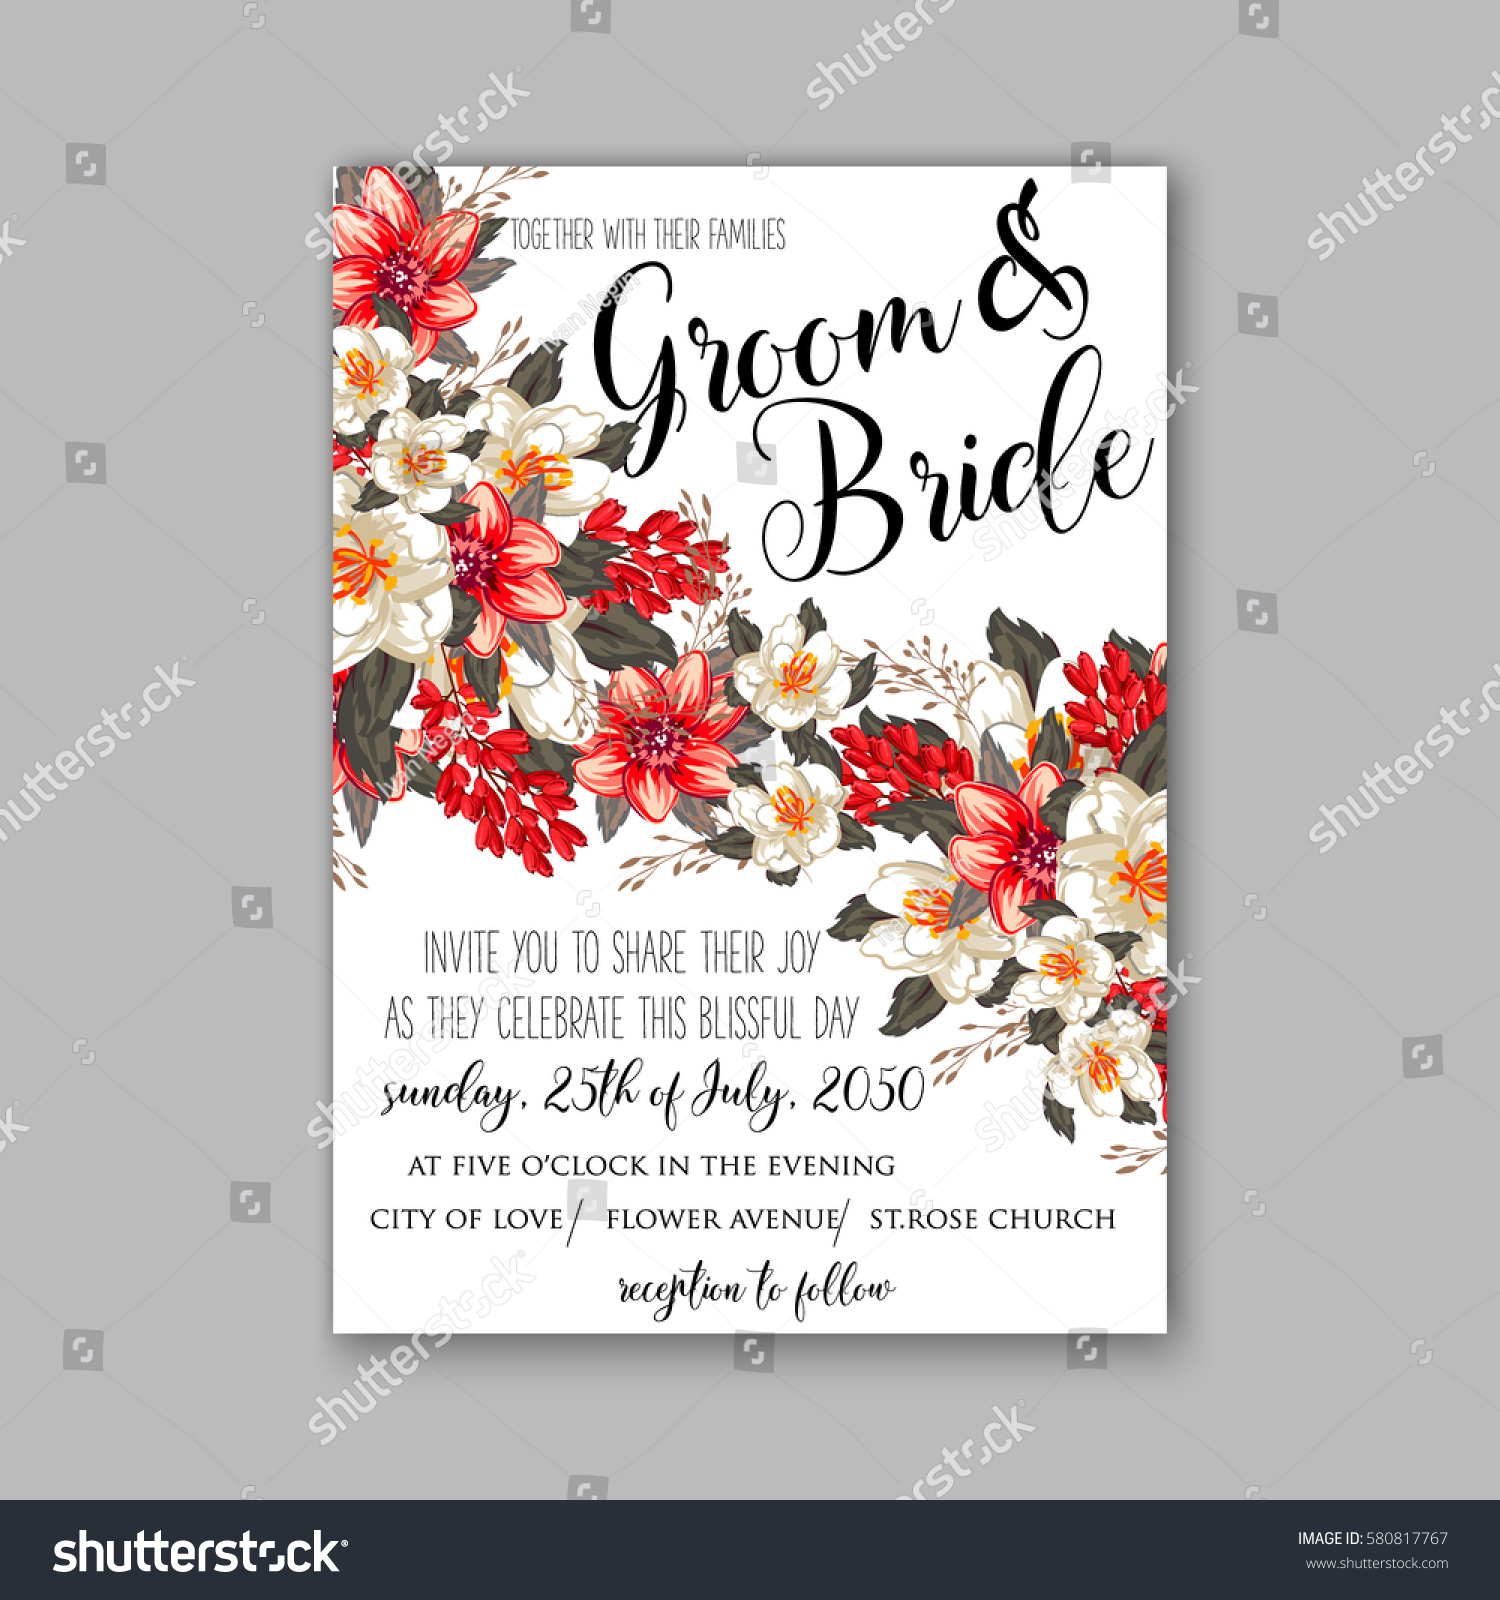 Romantic Wedding Invitation Card Template Red Stock Vector Royalty